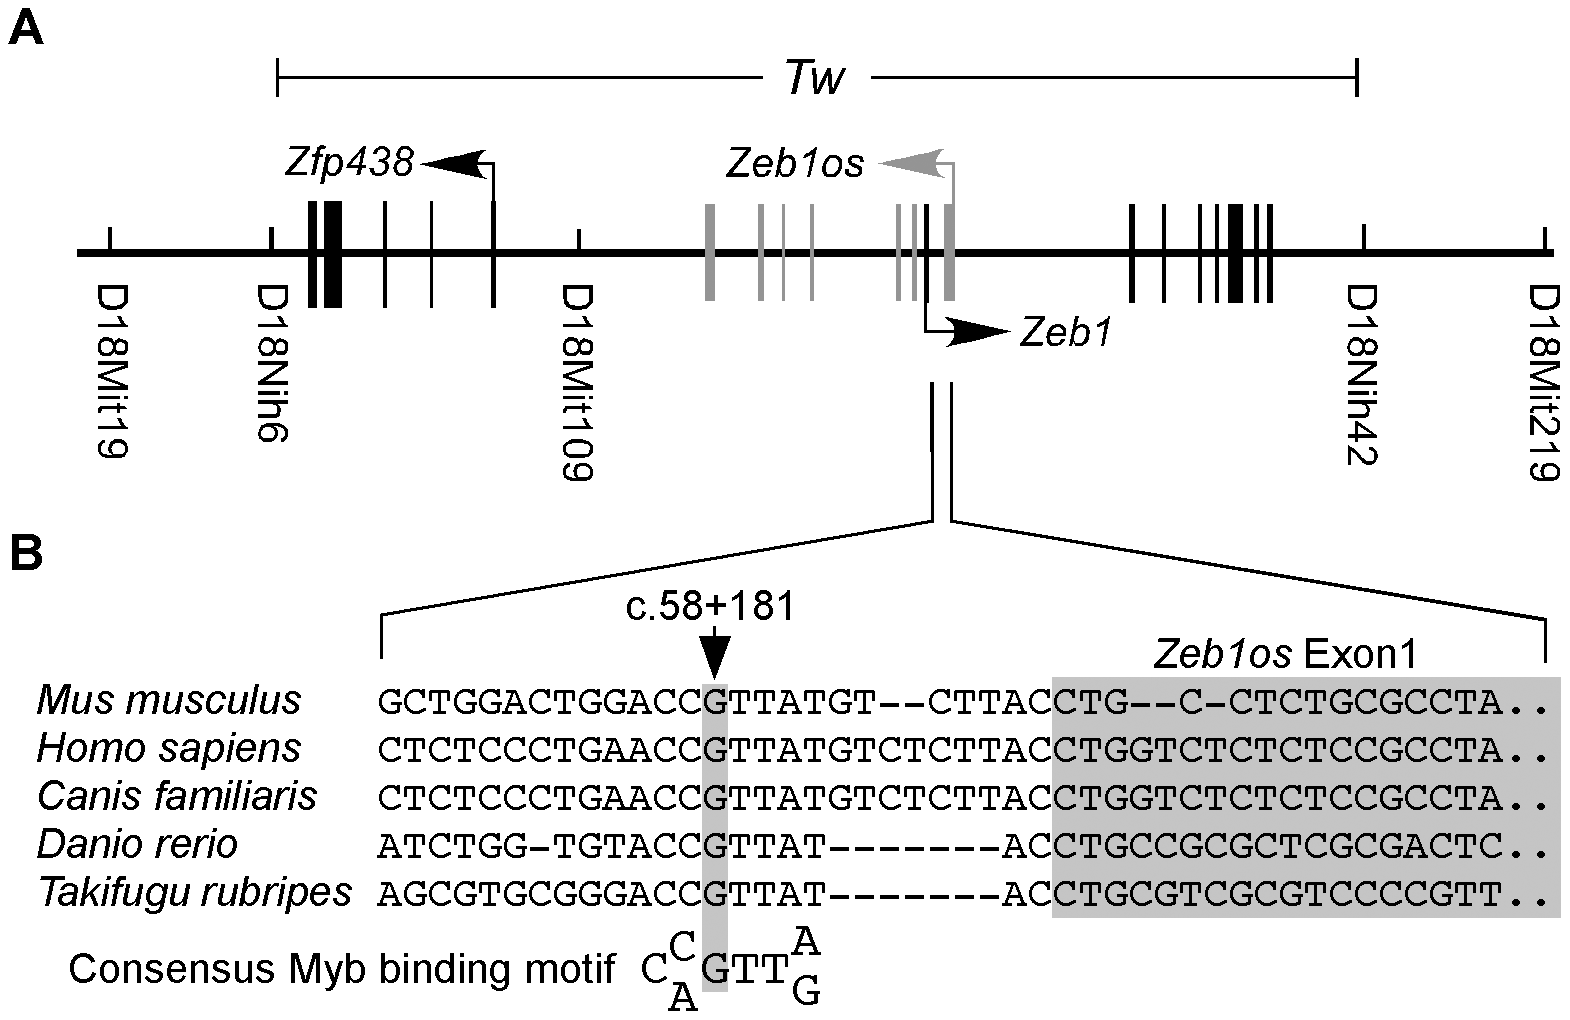 Linkage mapping and identification of <i>Tw</i> mutation.